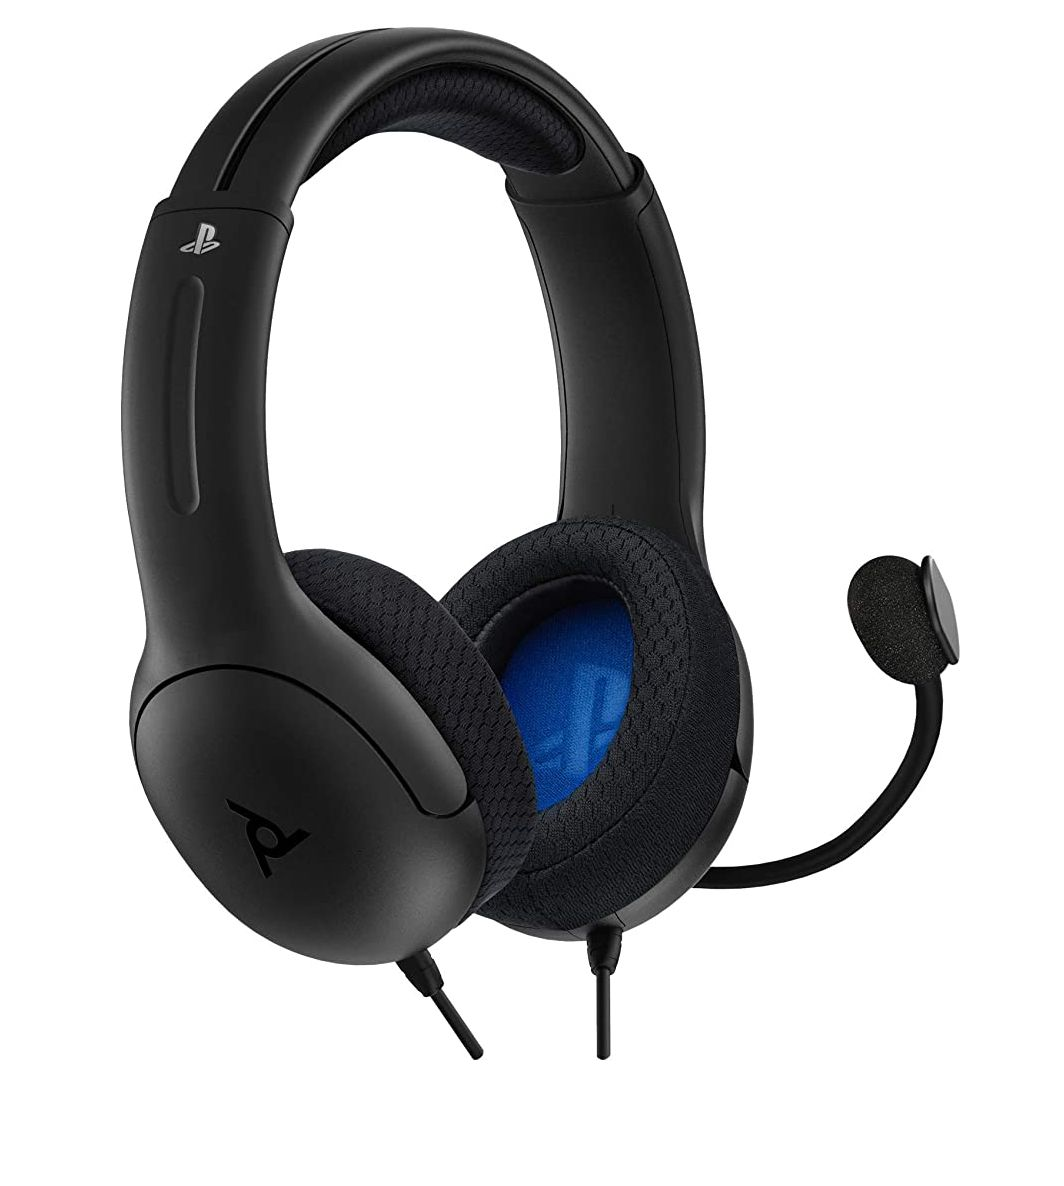 PS4 pdp gaming lvl40 headset wired